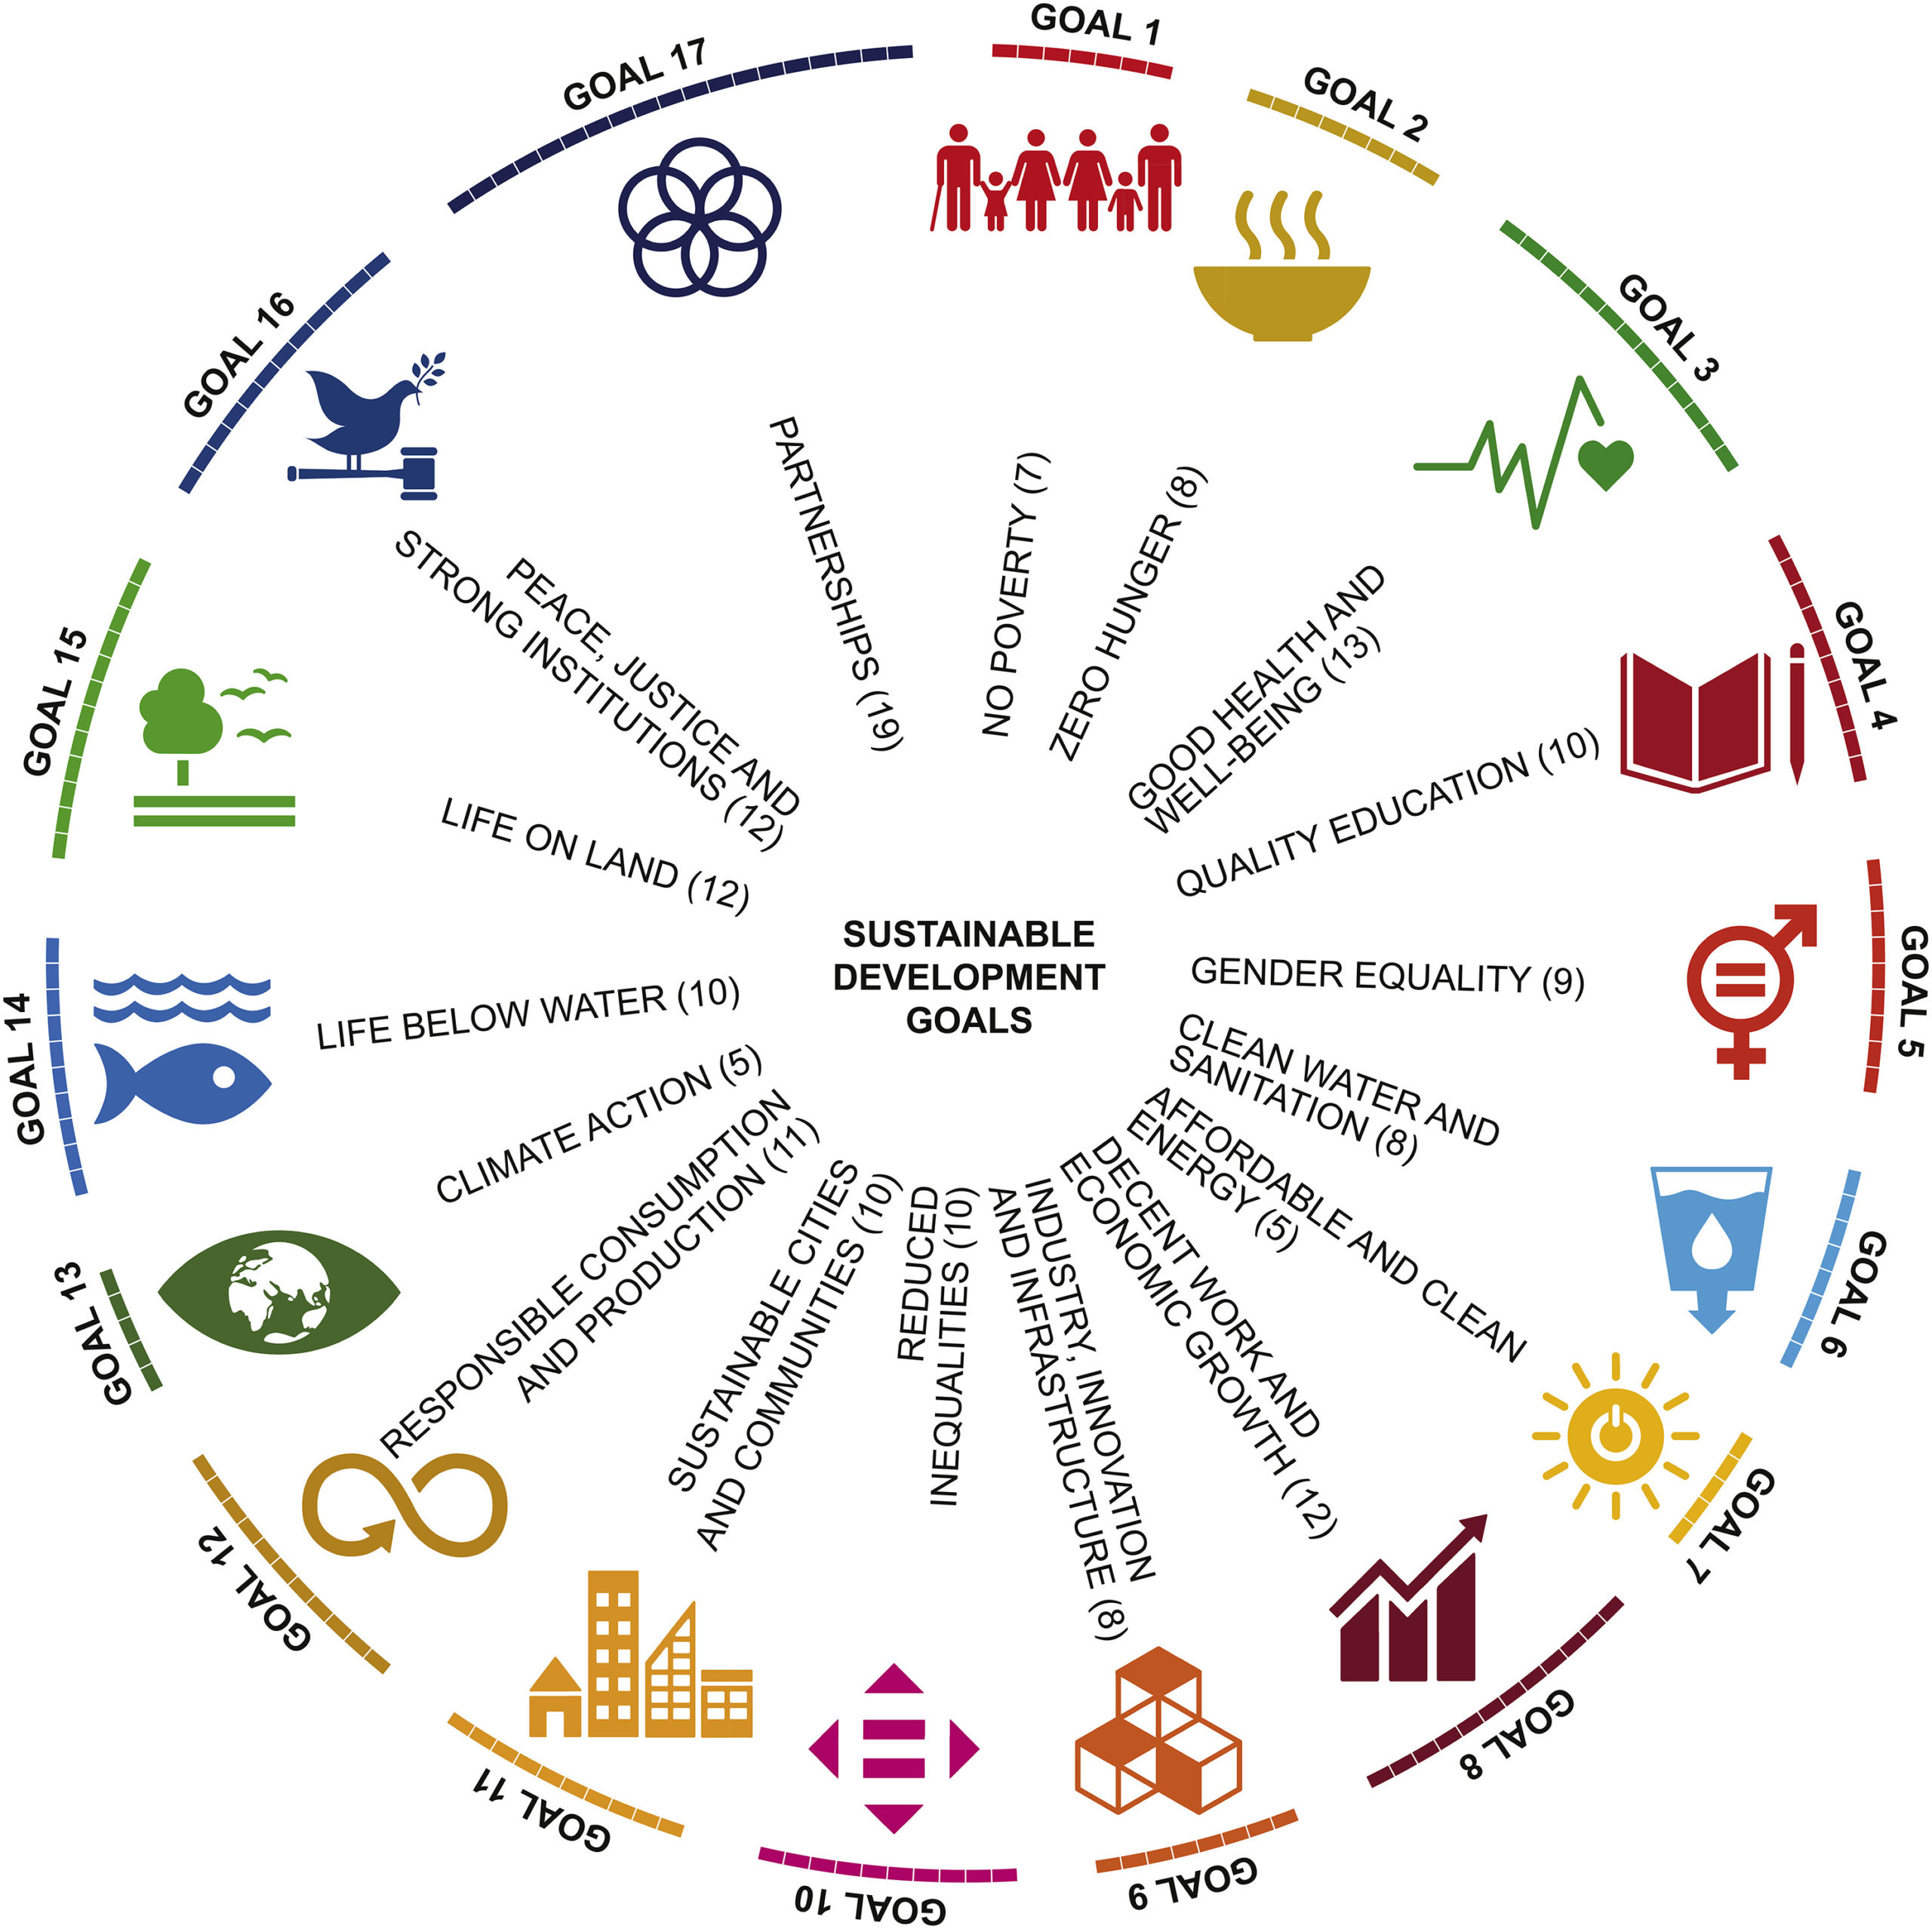 The 17 UN Sustainable Development Goals (SDGs). Numbers following goal names indicate numbers of targets for each. Photo by Carr et. al.